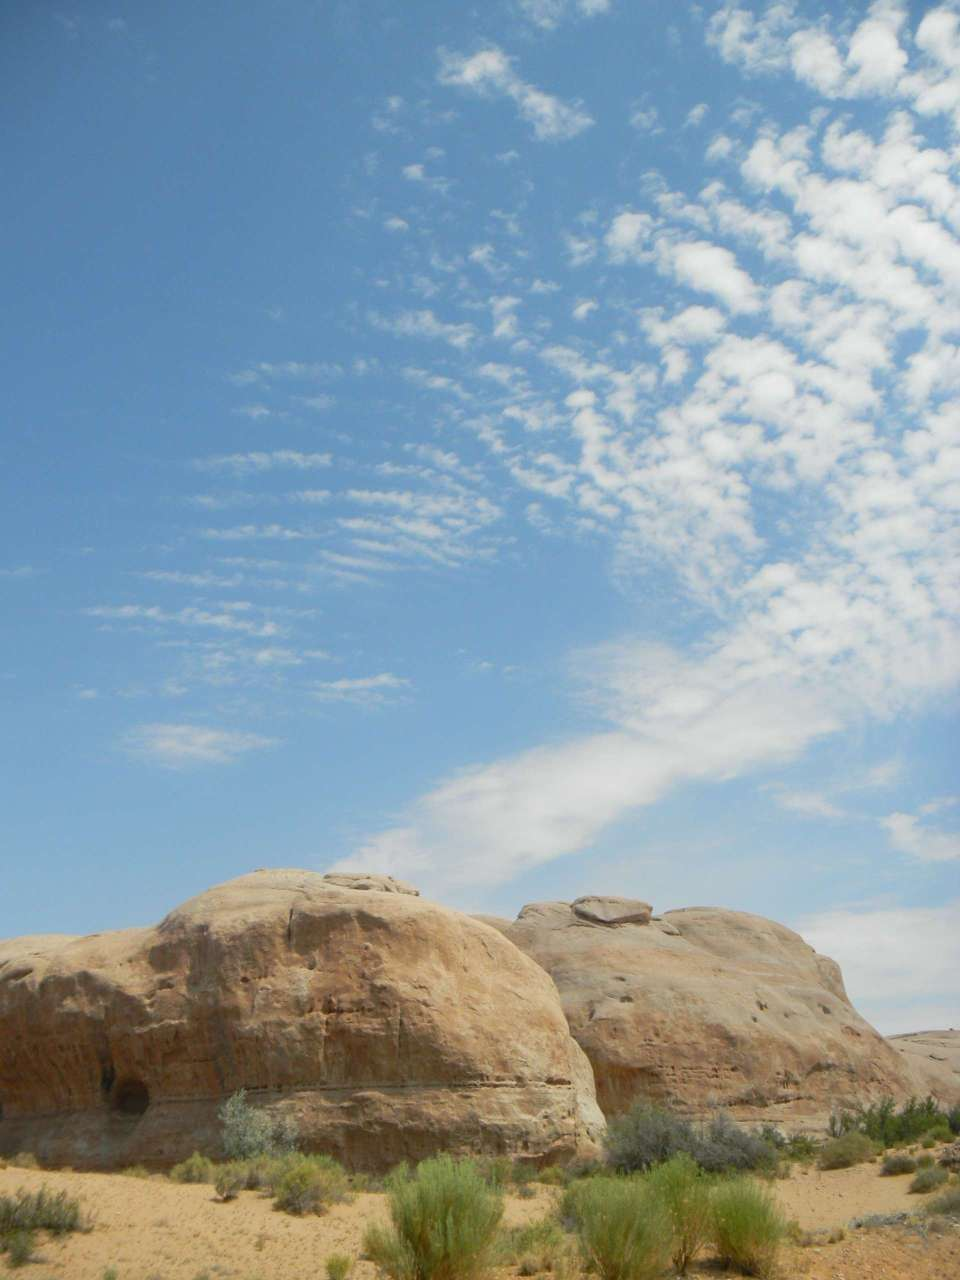 Rock formations, dry arid land, wispy clouds